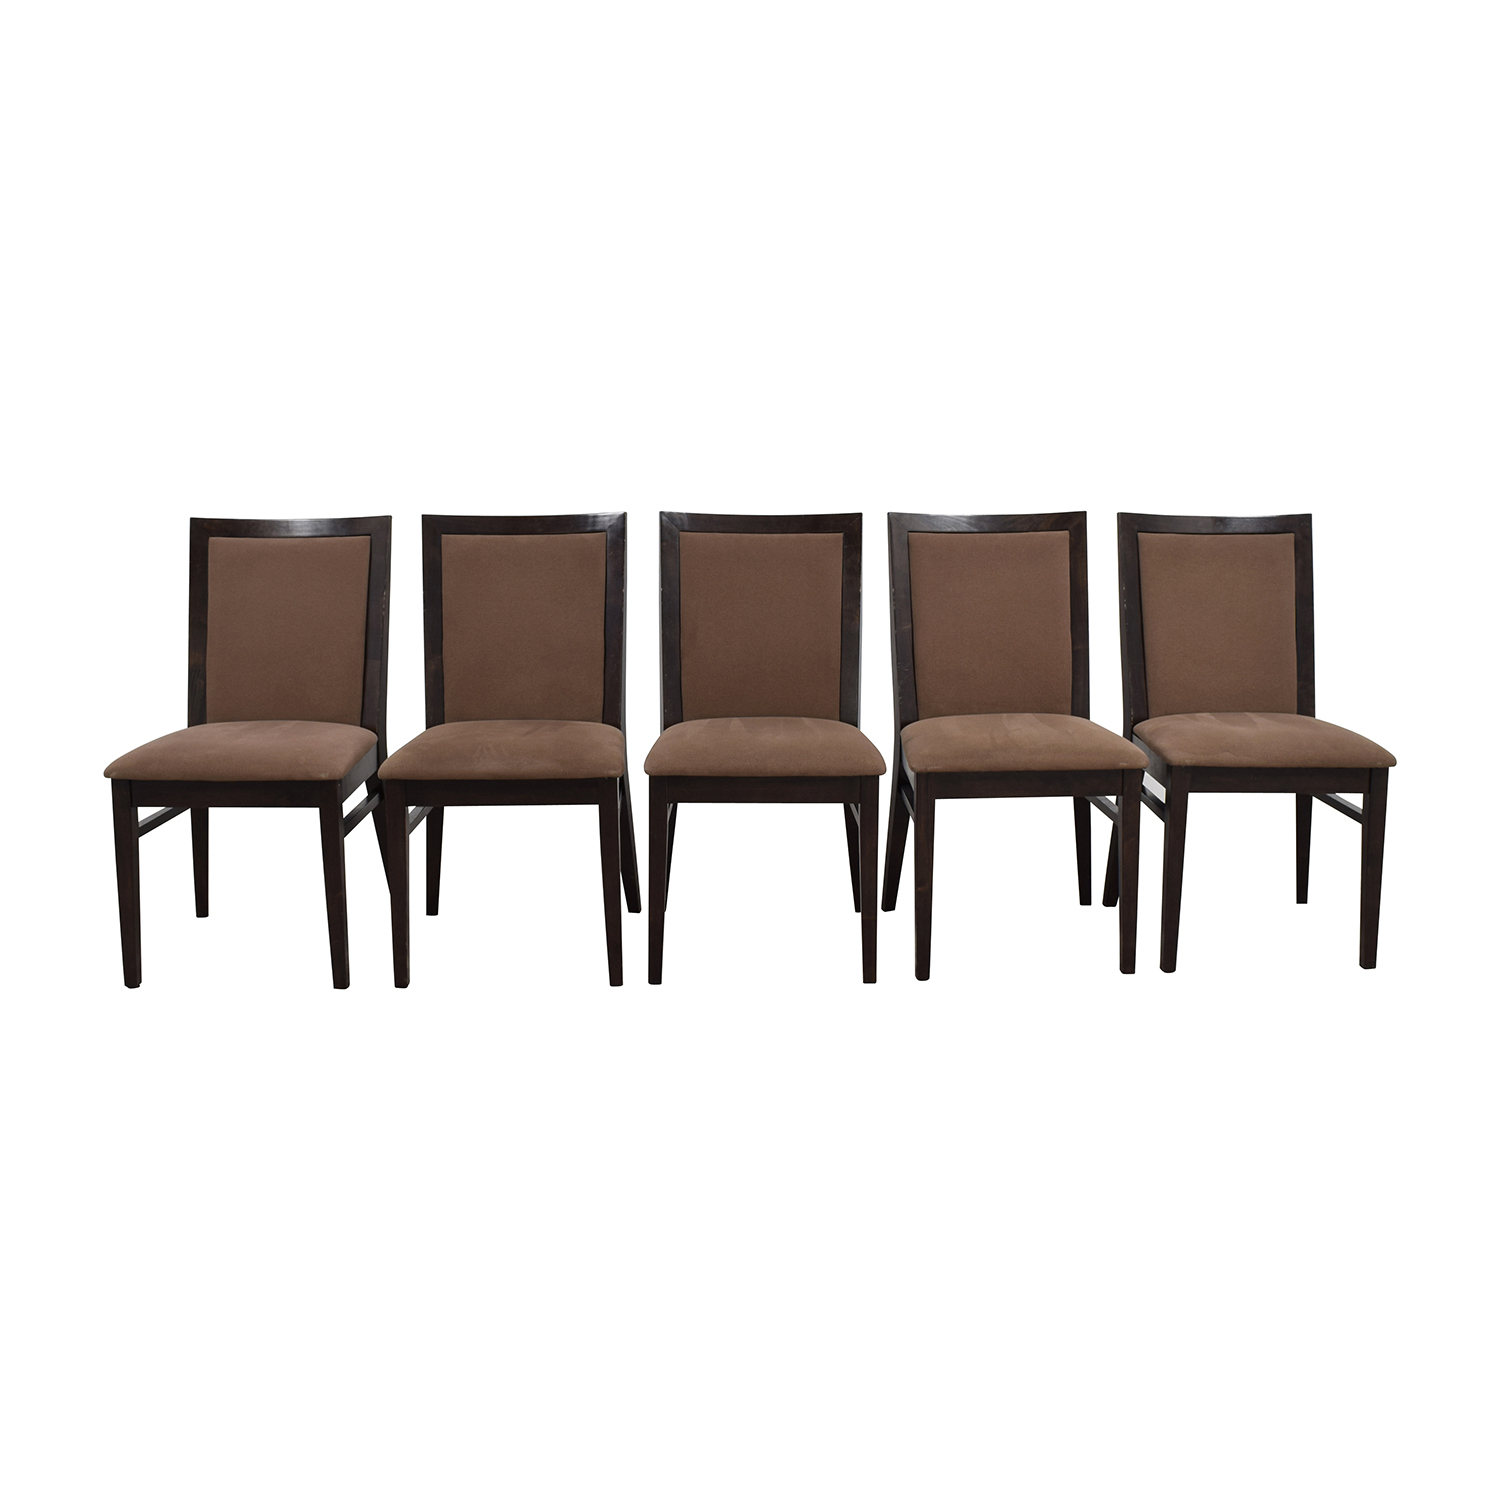 Context Context Mahogany Brown Upholstered Dining Chairs used